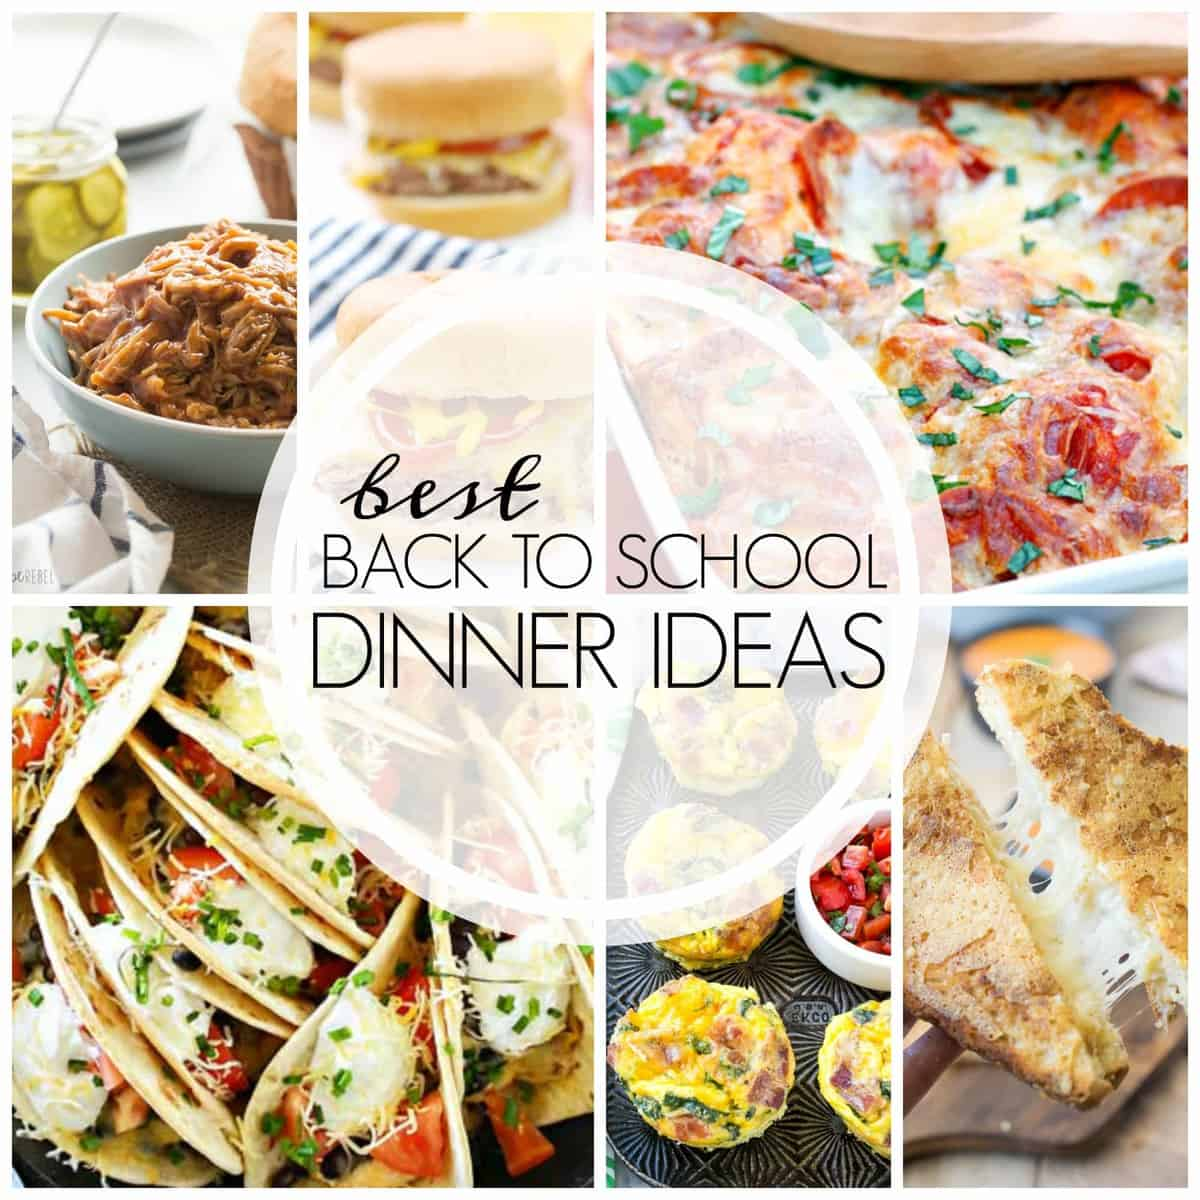 Easy Dinner Recipes: 20+ Family Friendly Ideas